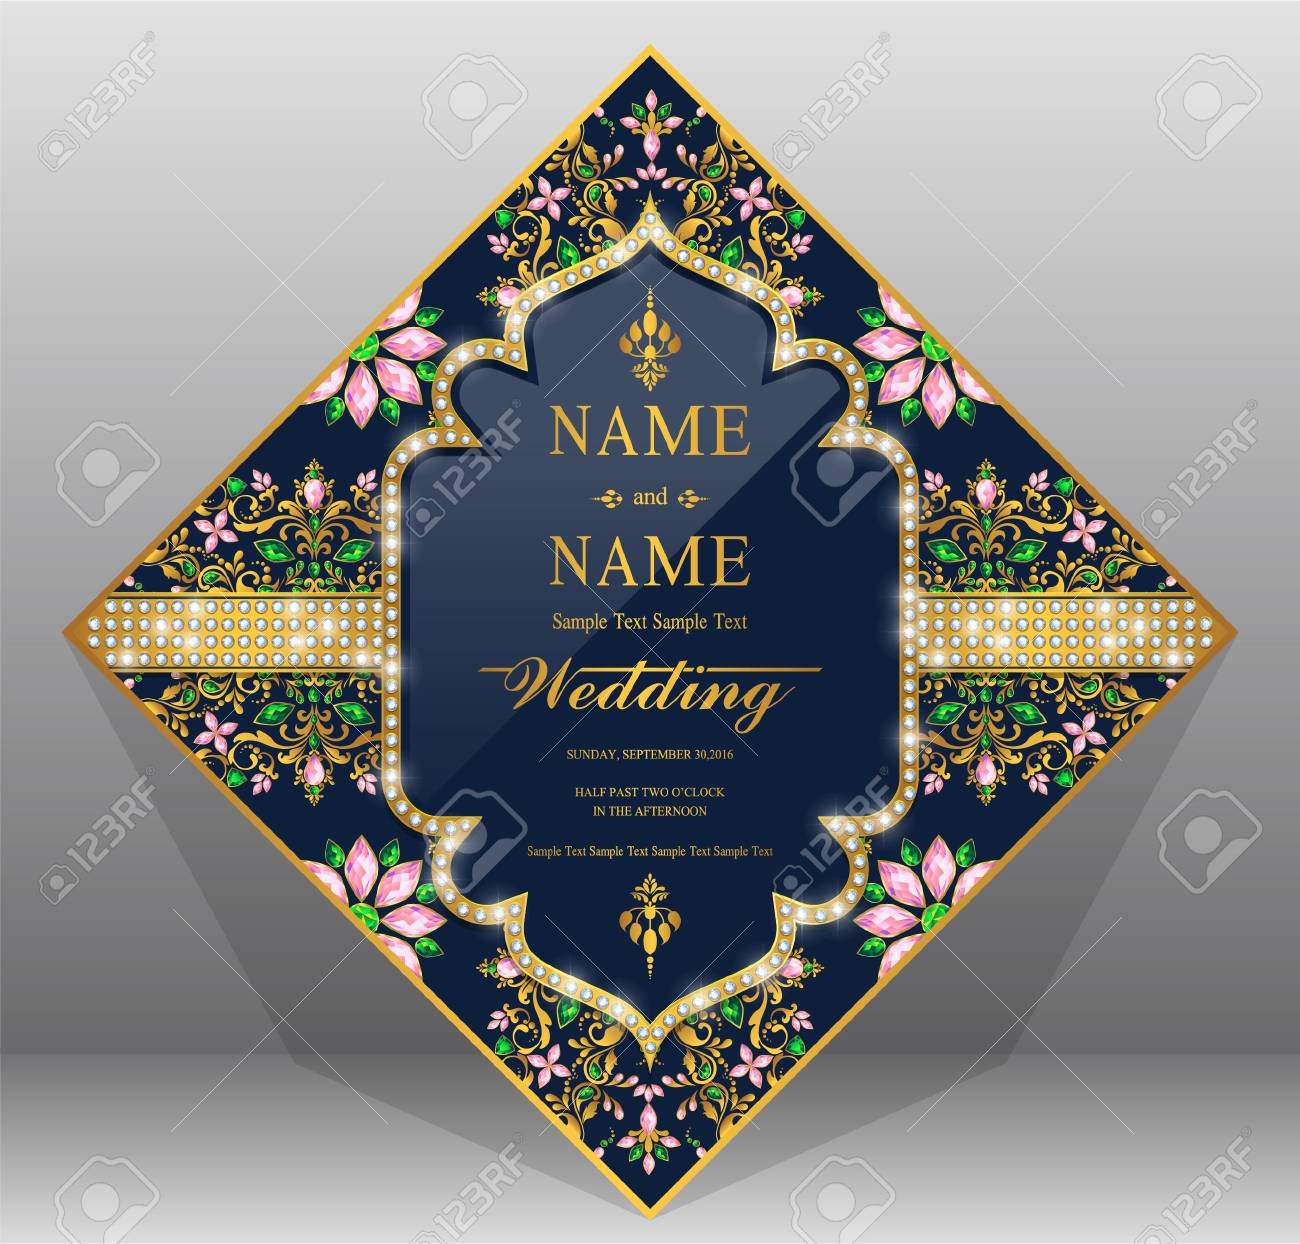 wedding invitation card templates with gold patterned and crystals